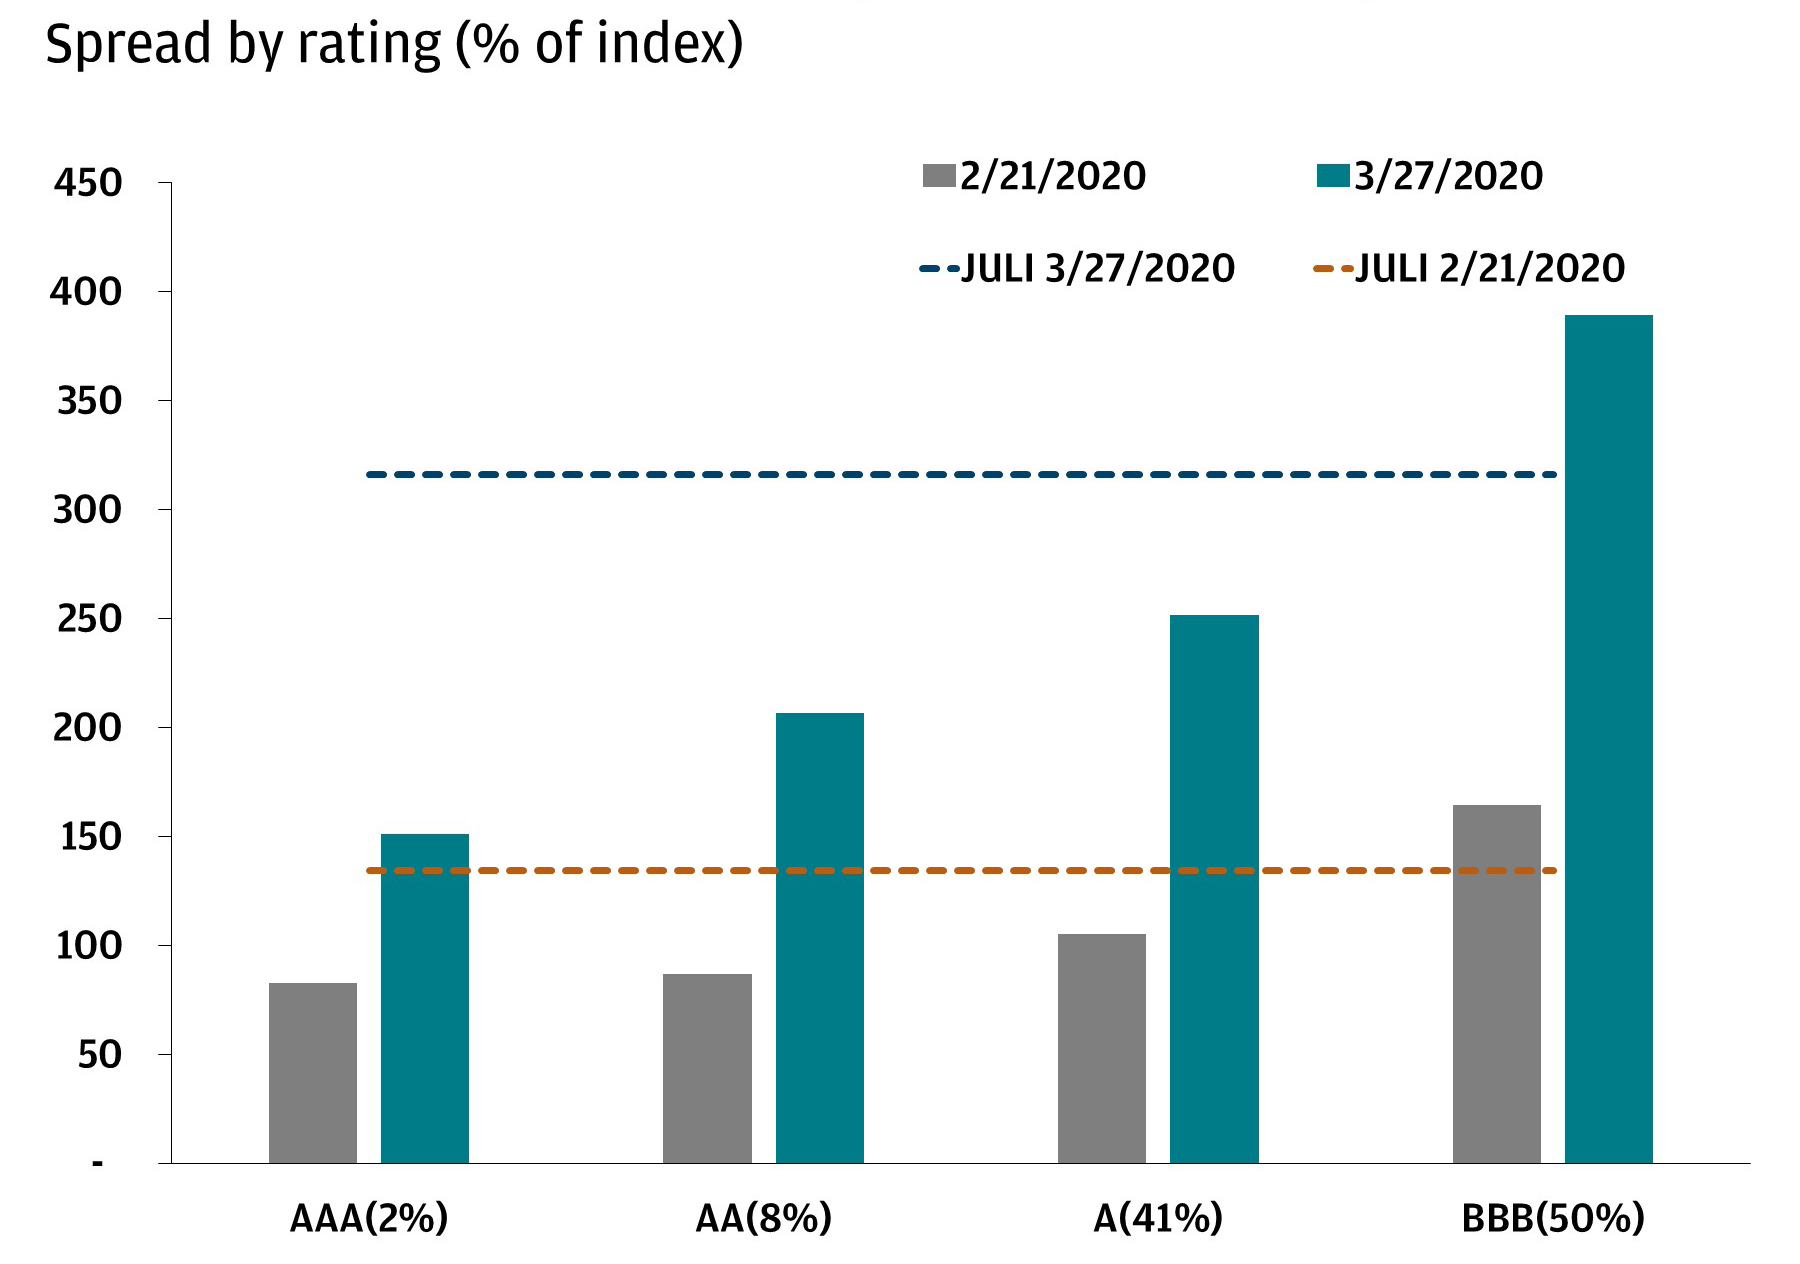 Bar chart shows the spread by rating—AAA, AA, A and BBB—comparing across two time periods: 2/21/2020 and 3/27/2020. The chart highlights that across all ratings, the spread has increased relatively evenly between 2/21/2020 and 3/27/2020, with spreads on average doubling.